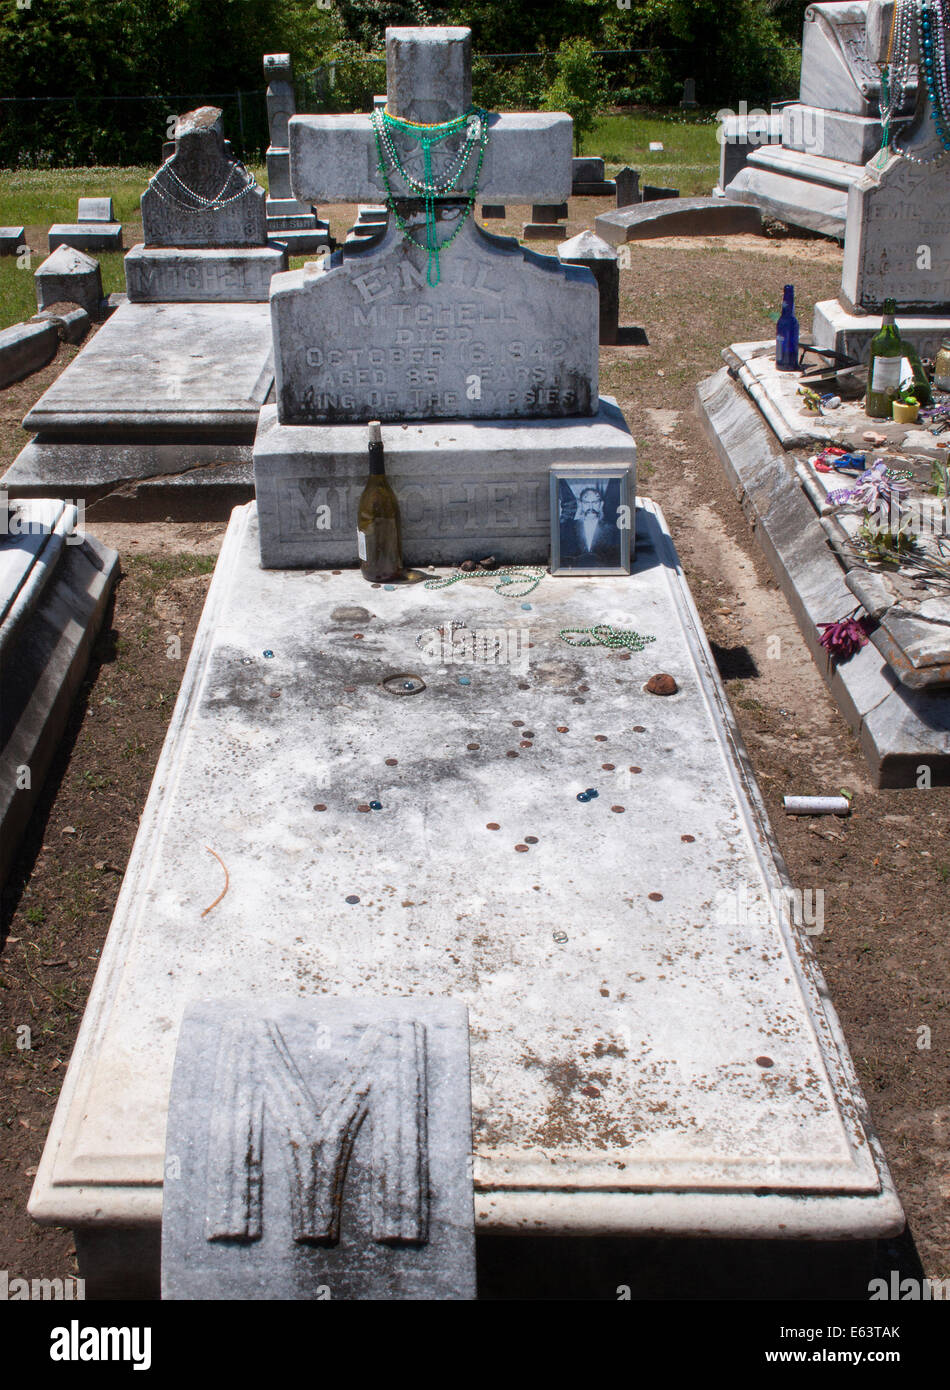 Gypsy family graves at a cemetery in Meridian Mississippi - Stock Image